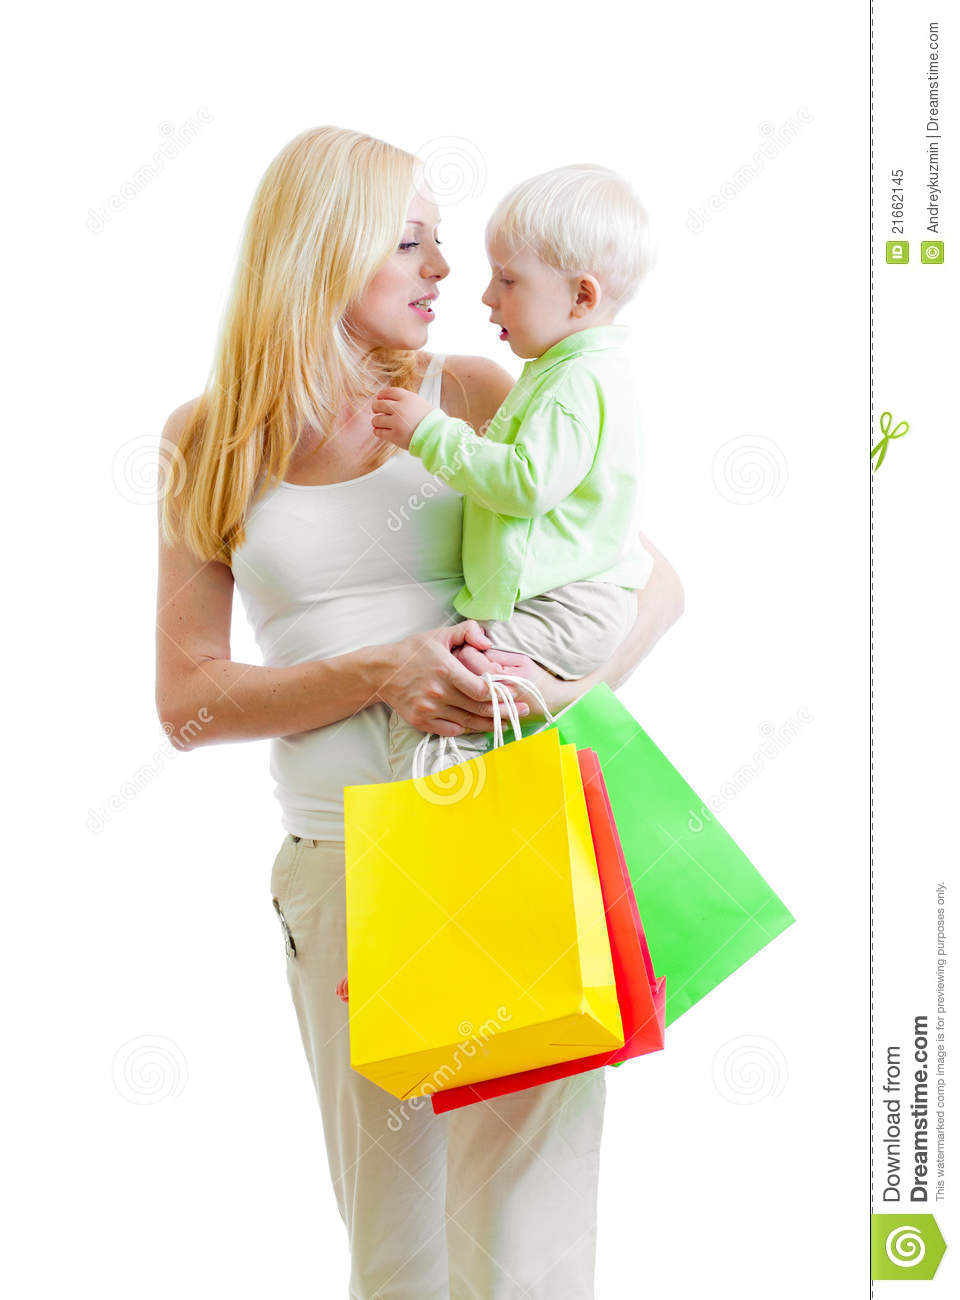 shopping with mother essay Shopping essay i like going shopping, especially in the sales, because you can find a lot of special prices but there are some questions related to going shopping that i don't like.